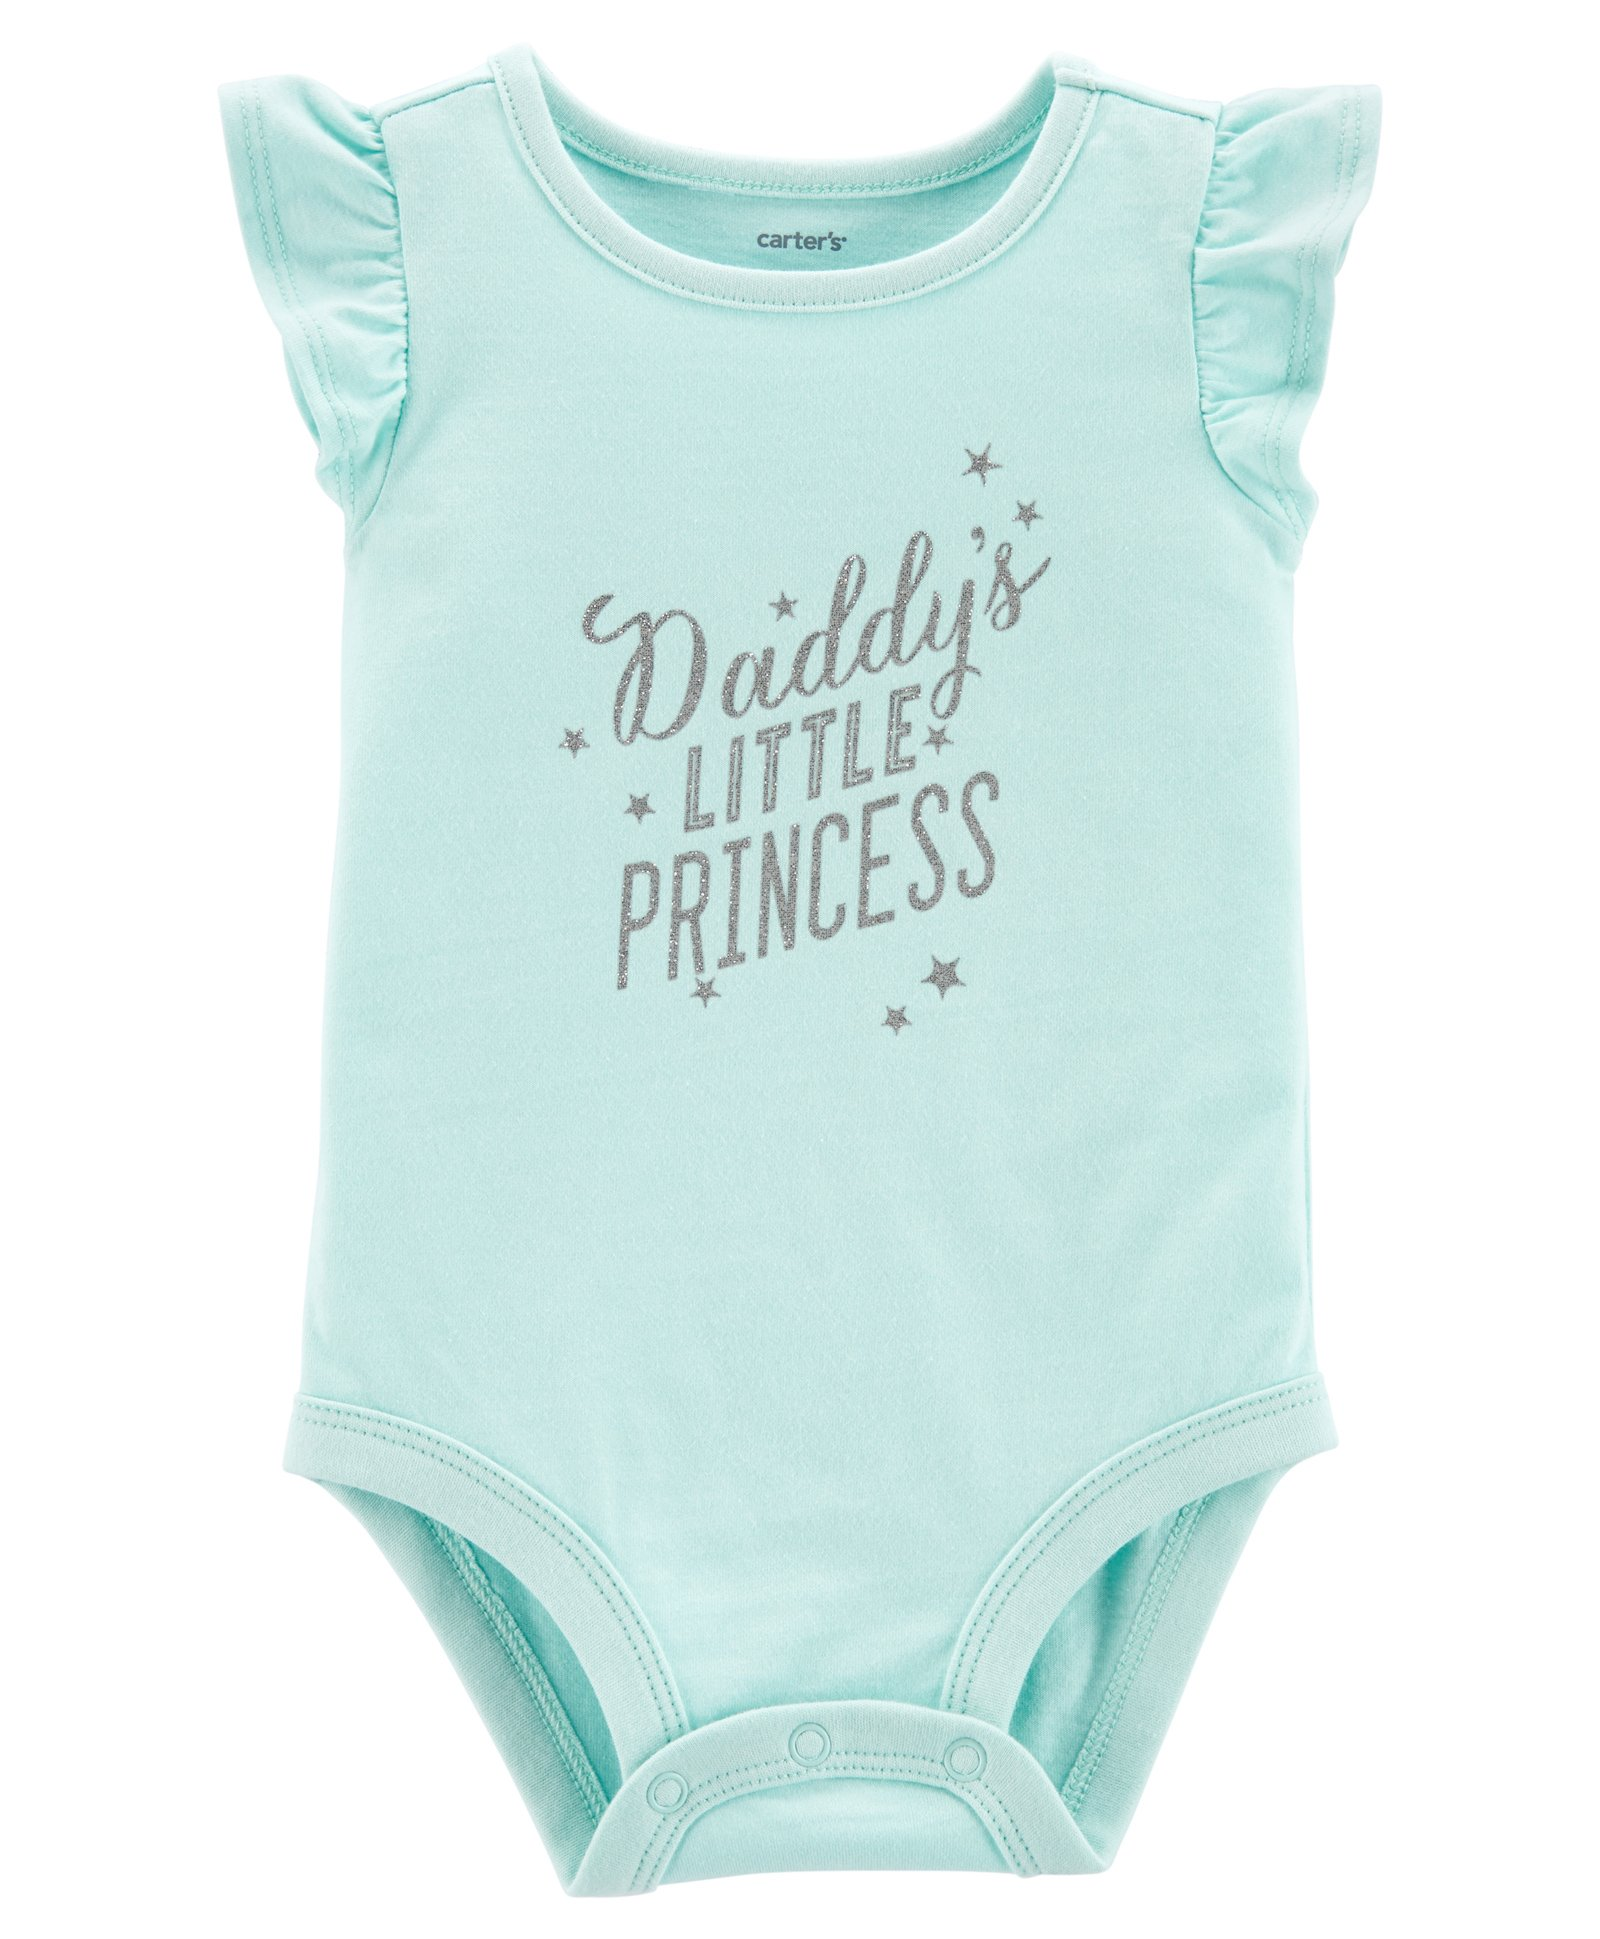 fdbc52da7 Buy Carters Daddys Little Princess Collectible Bodysuit Turquois for ...